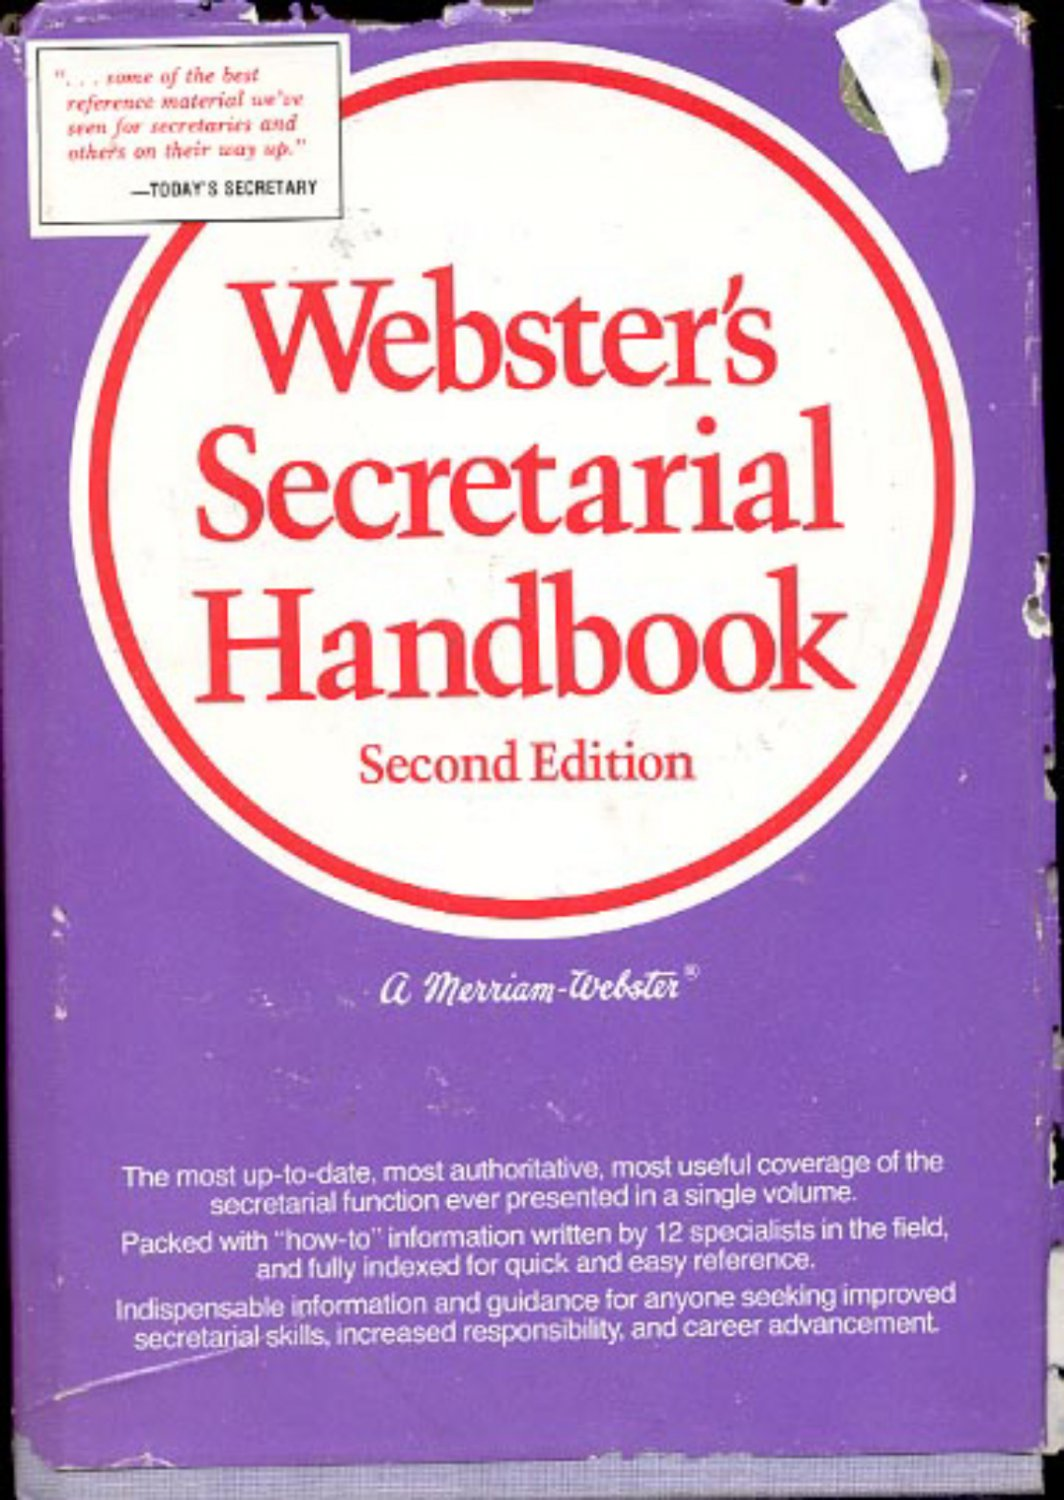 Webster's Secretarial Handbook- second edition- hb